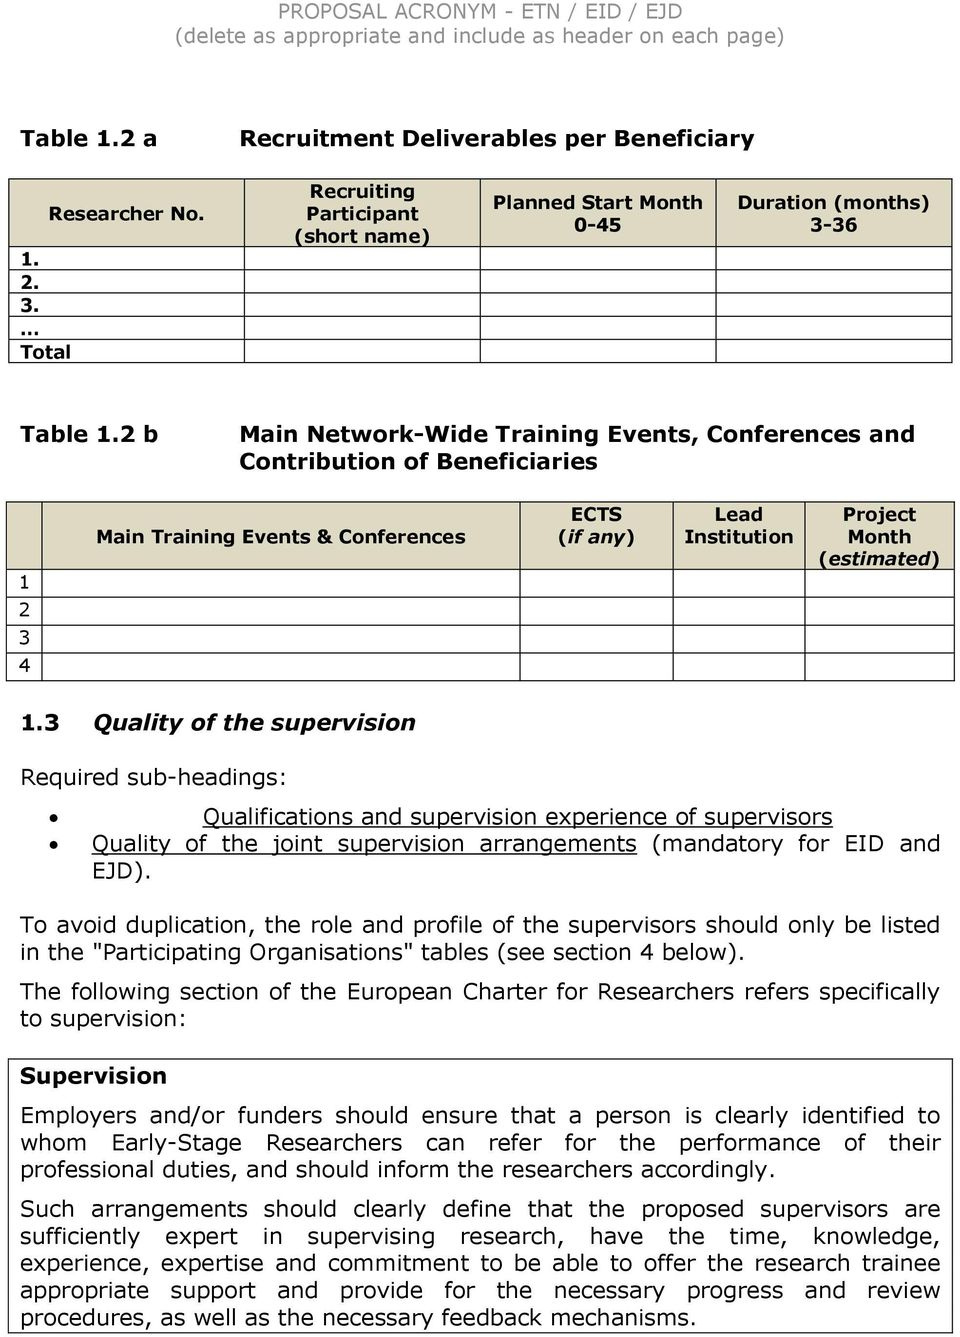 3 Quality of the supervision Qualifications and supervision experience of supervisors Quality of the joint supervision arrangements (mandatory for EID and EJD).